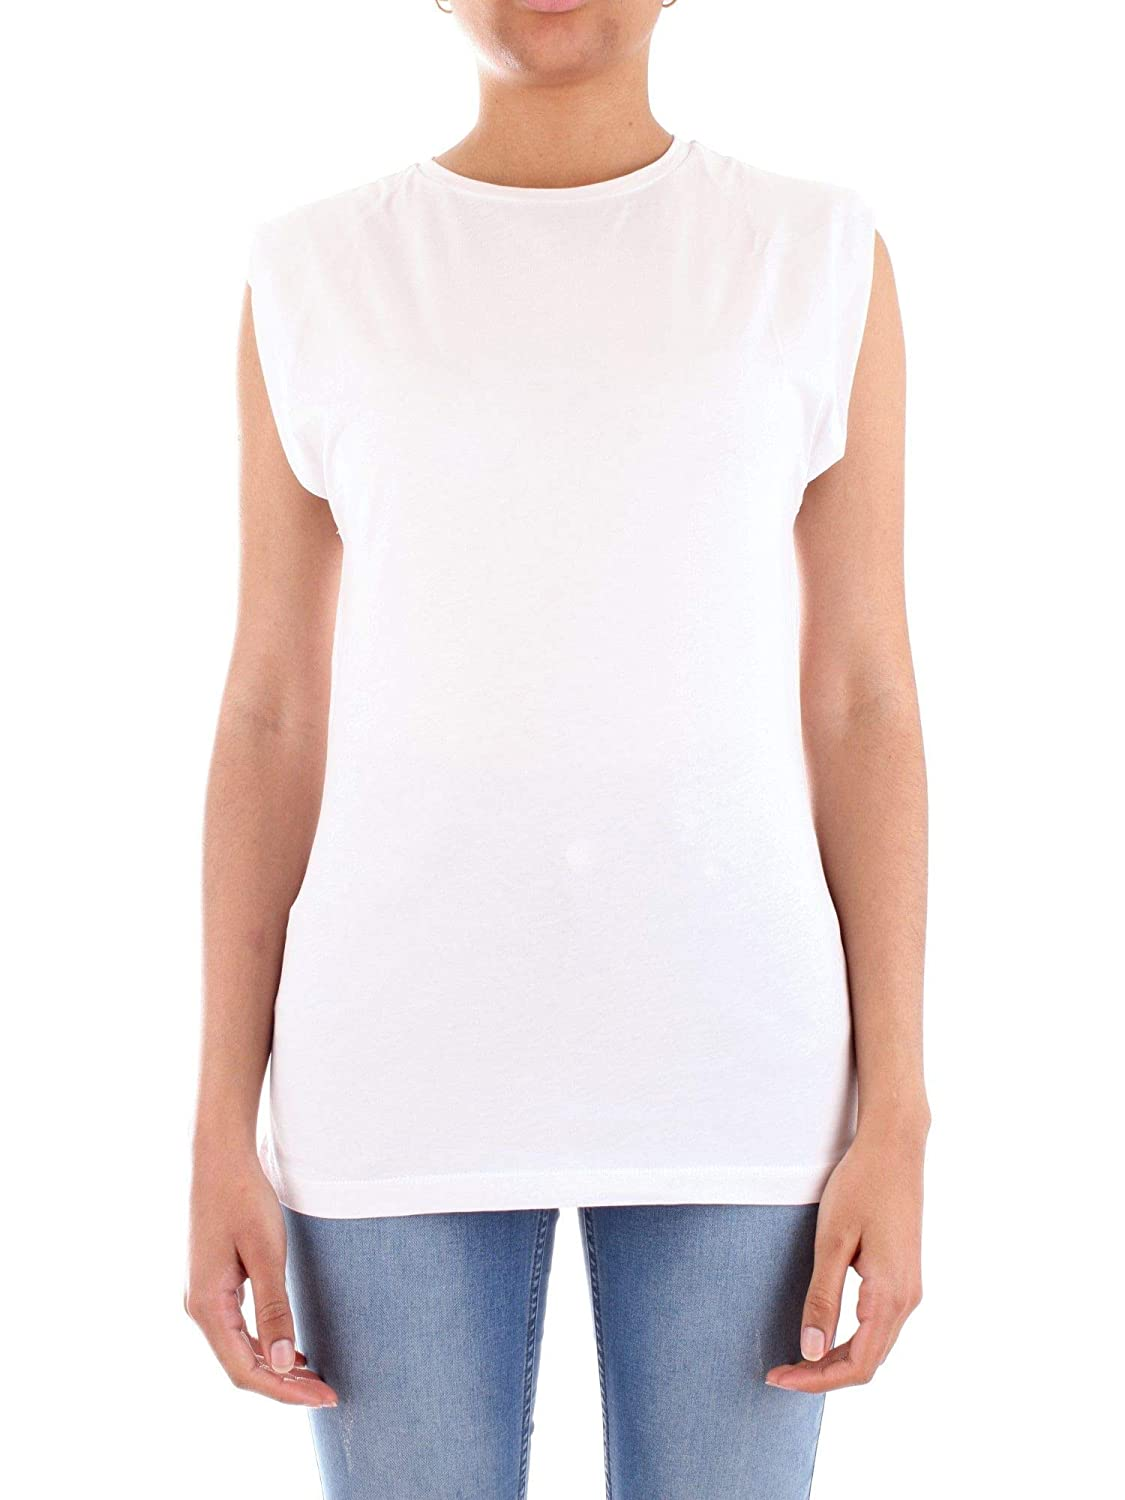 Silvian Heach Womens CVP19412TSBIANCO White Cotton T-Shirt